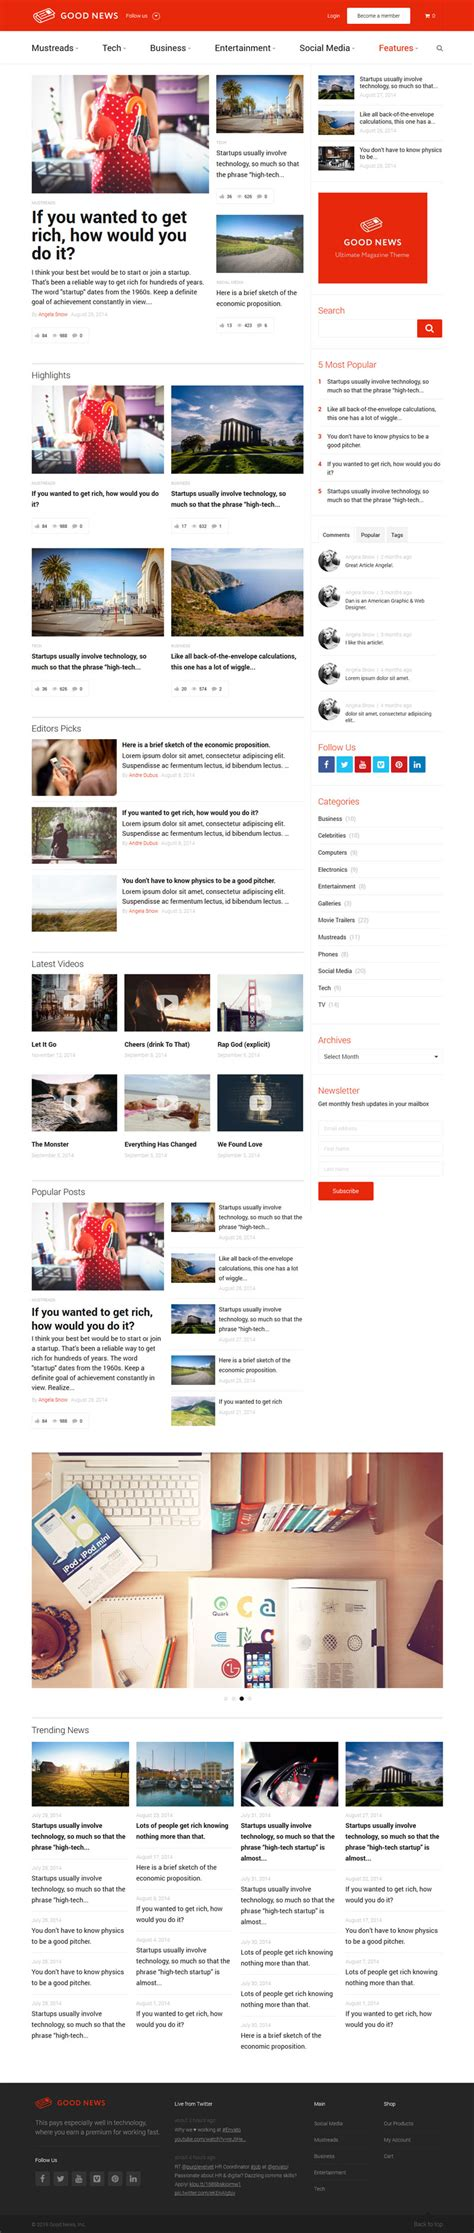 blogger magazine themes 2015 good news blog magazine theme flatdsgnflatdsgn